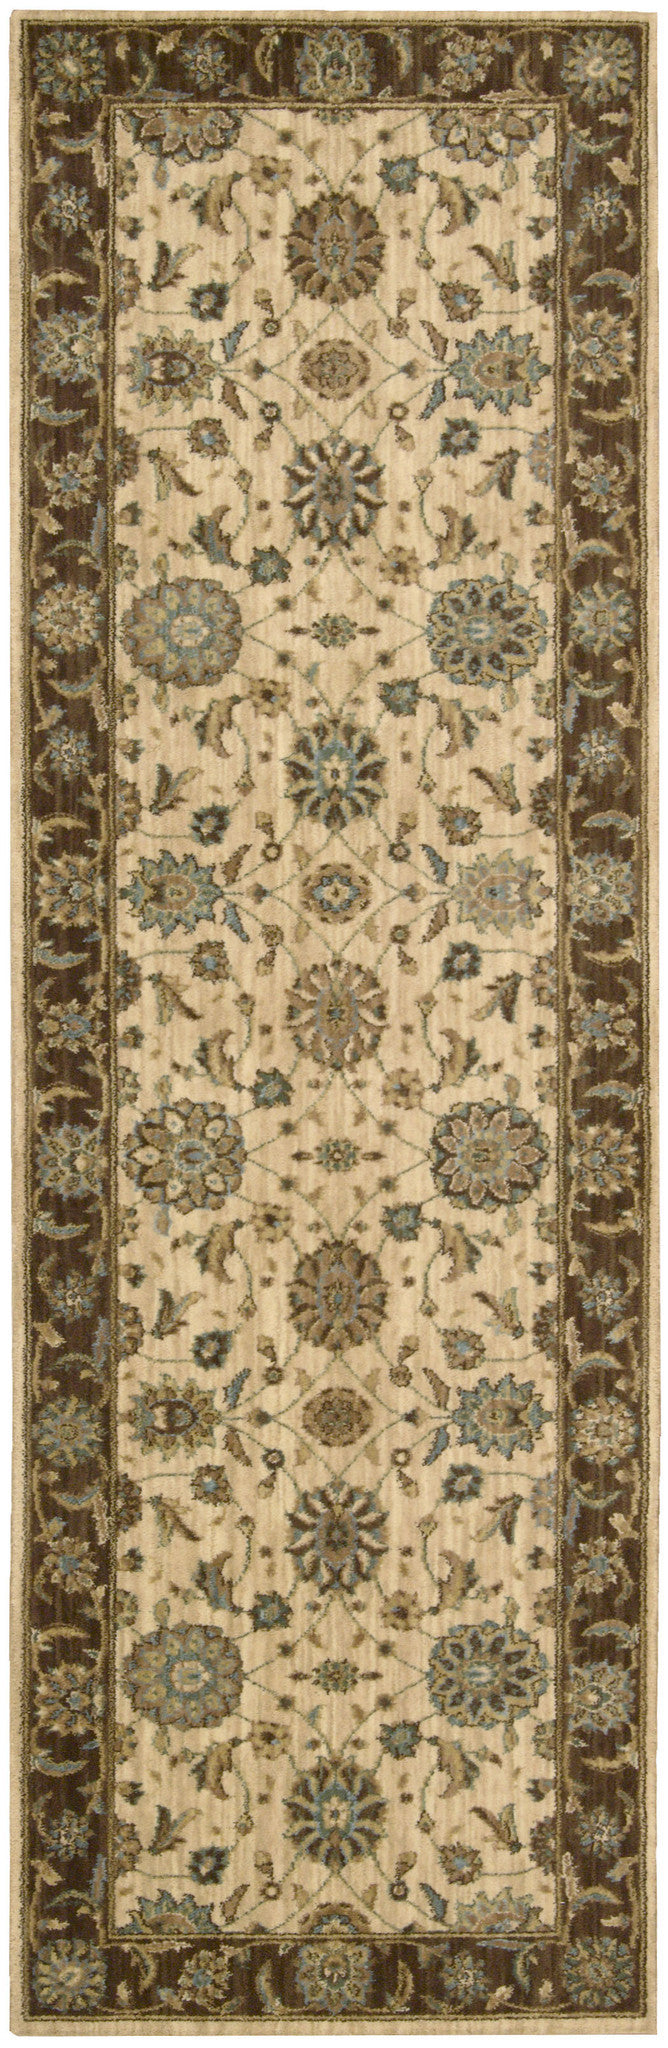 Nourison Living Treasures Beige Area Rug LI05 BGE